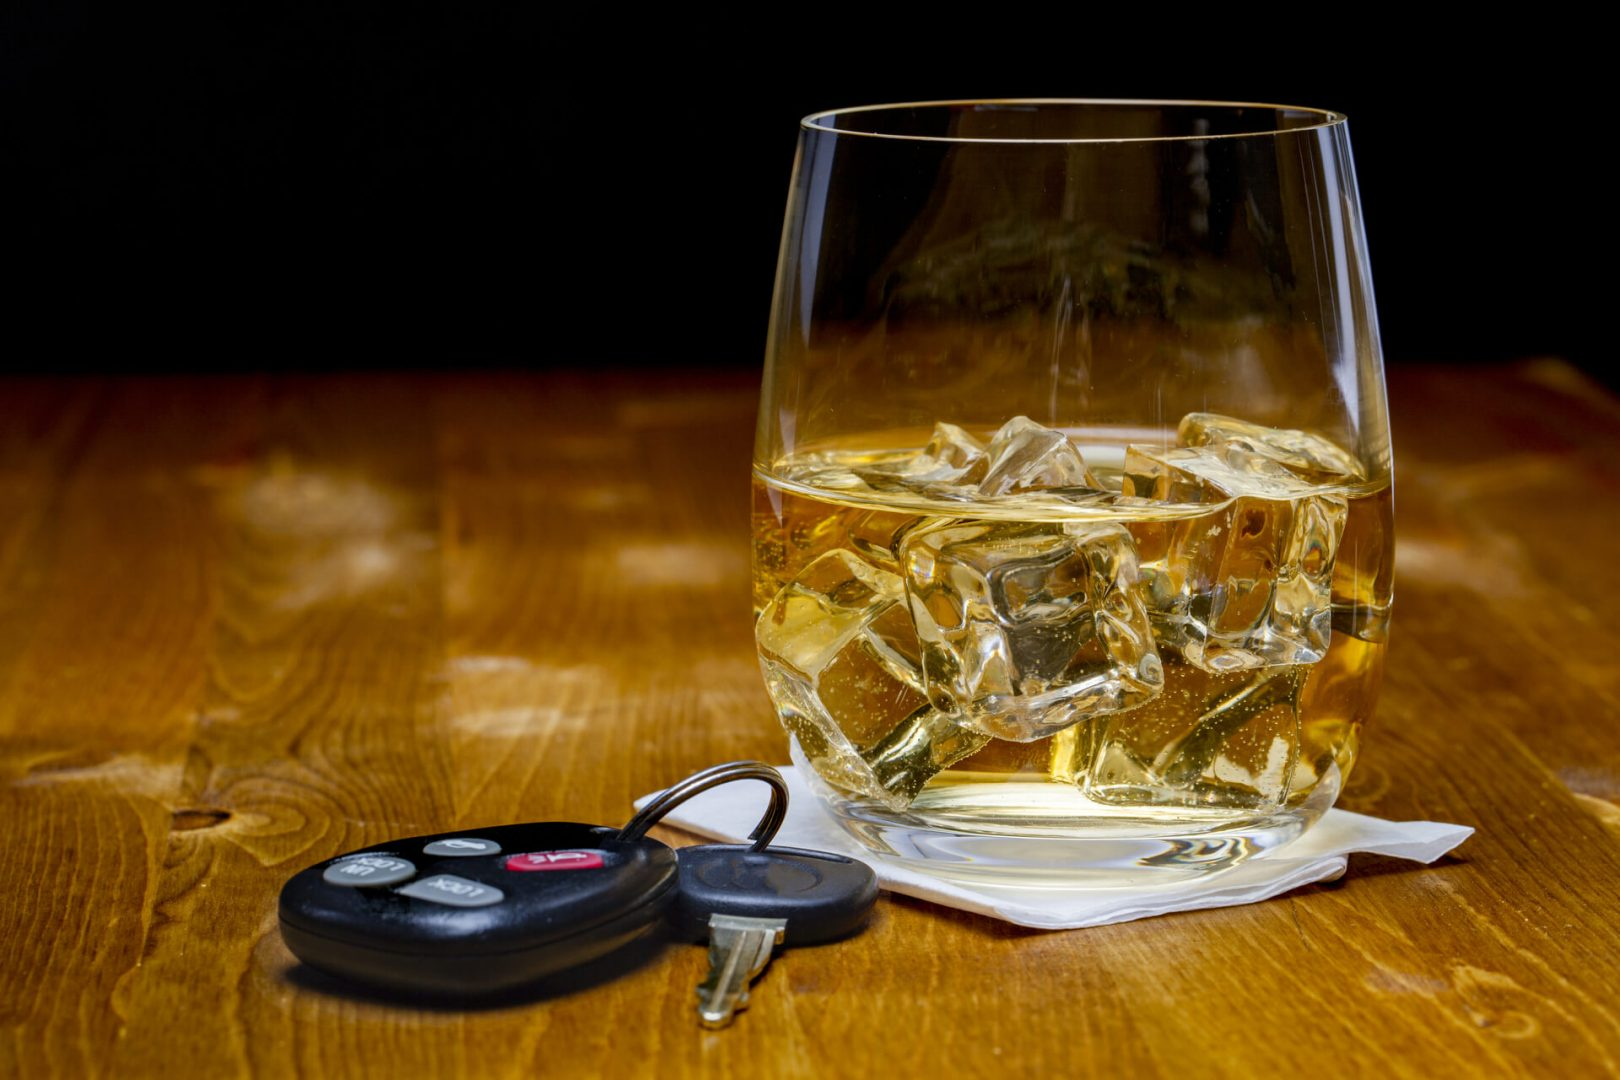 get-bail-bond-in-arlington-tx-for-dwi-arrest